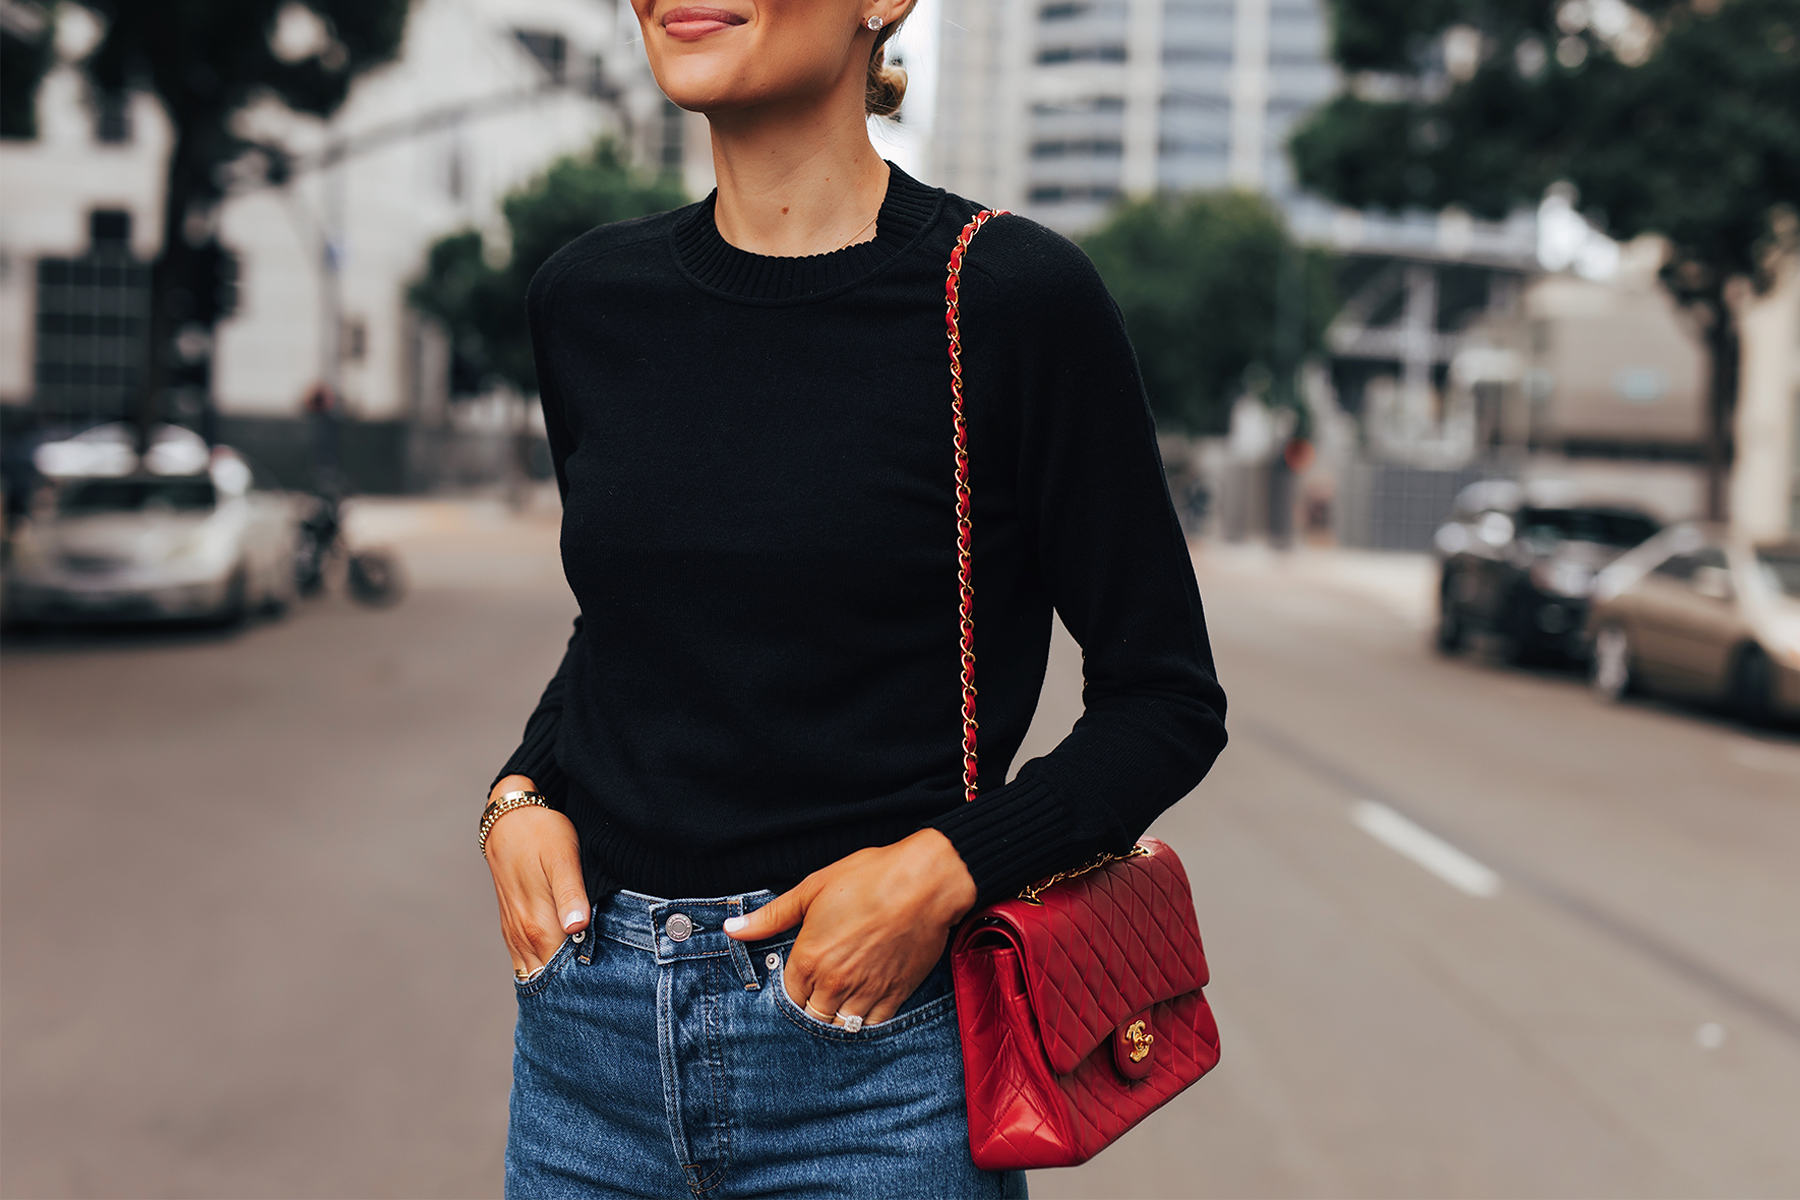 Fashion Jackson Wearing Everlane Black Cashmere Sweater Everlane Relaxed Jeans Chanel Red Handbag 1